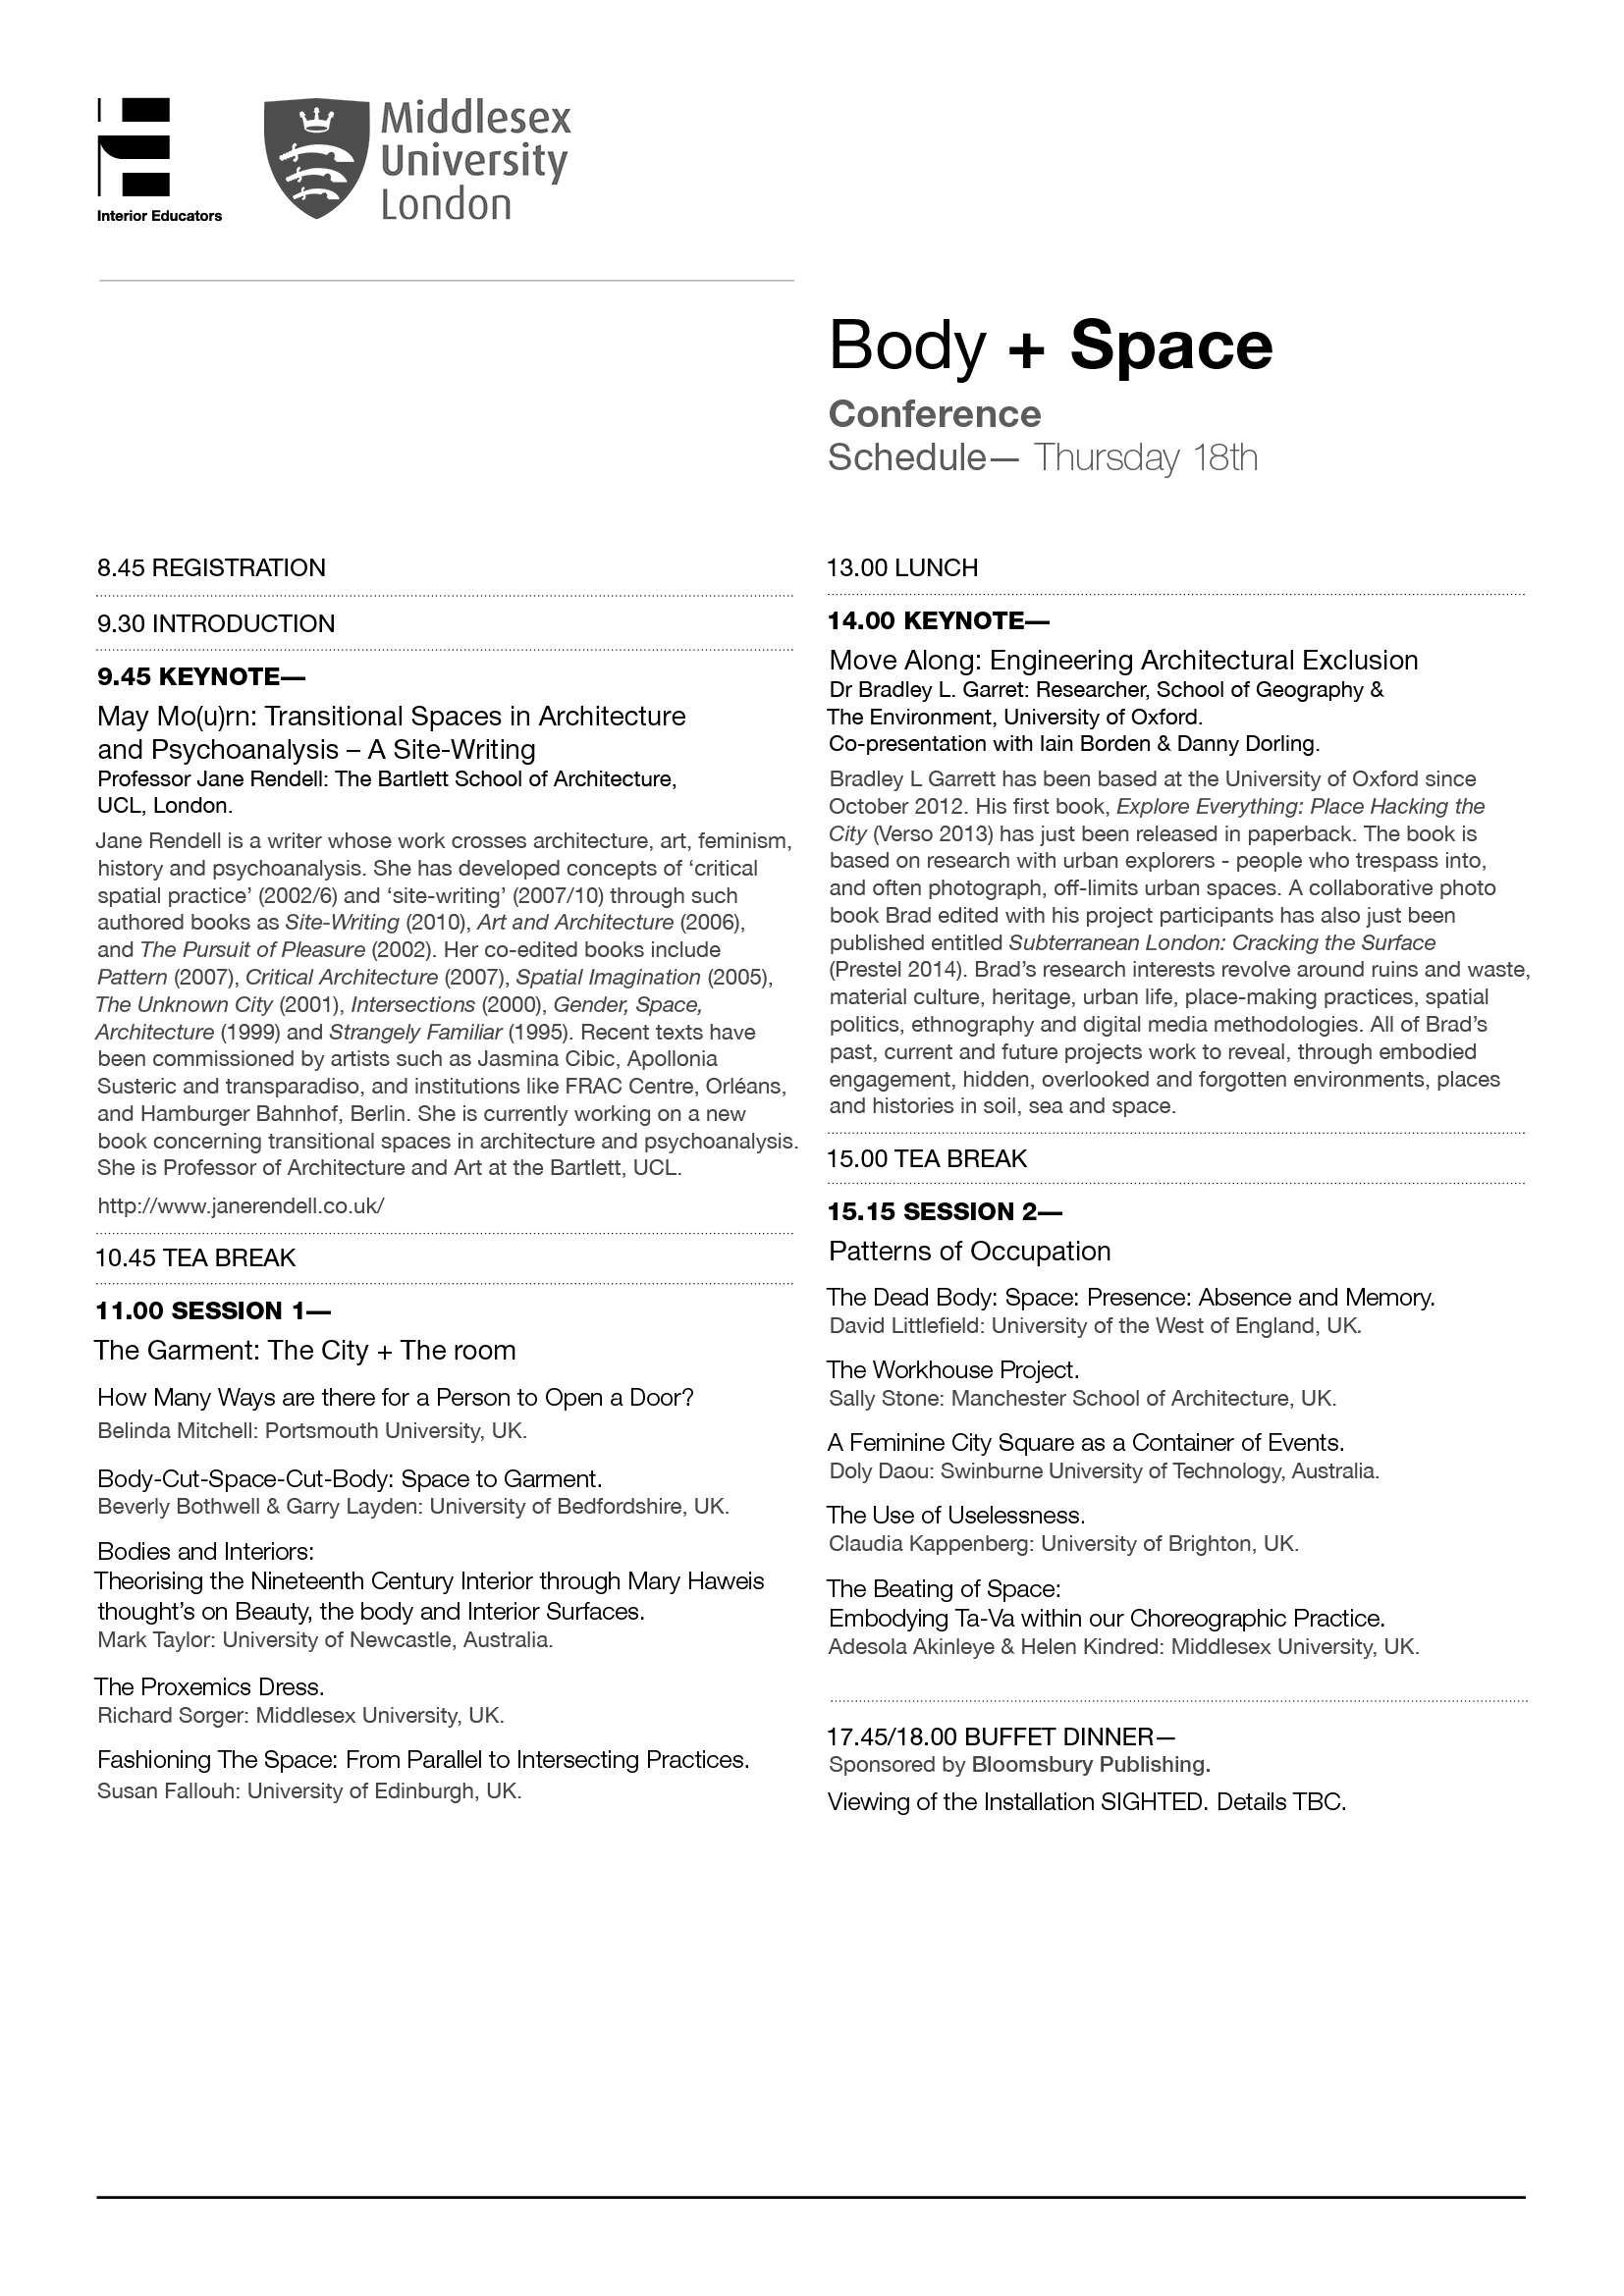 Body + Space Event - Thursday Schedule